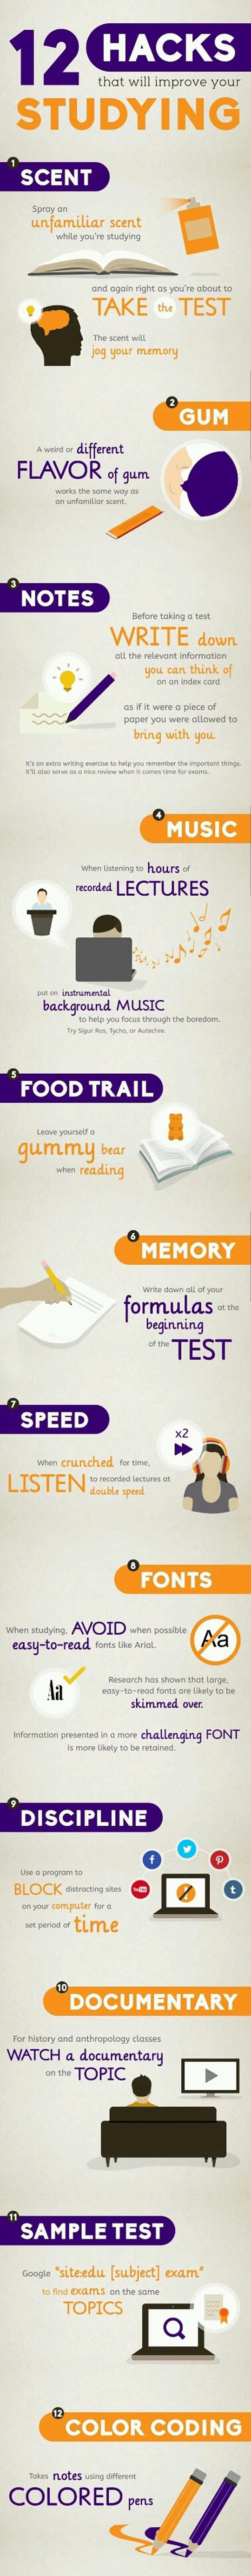 cool-studying-hacks-improve-scent